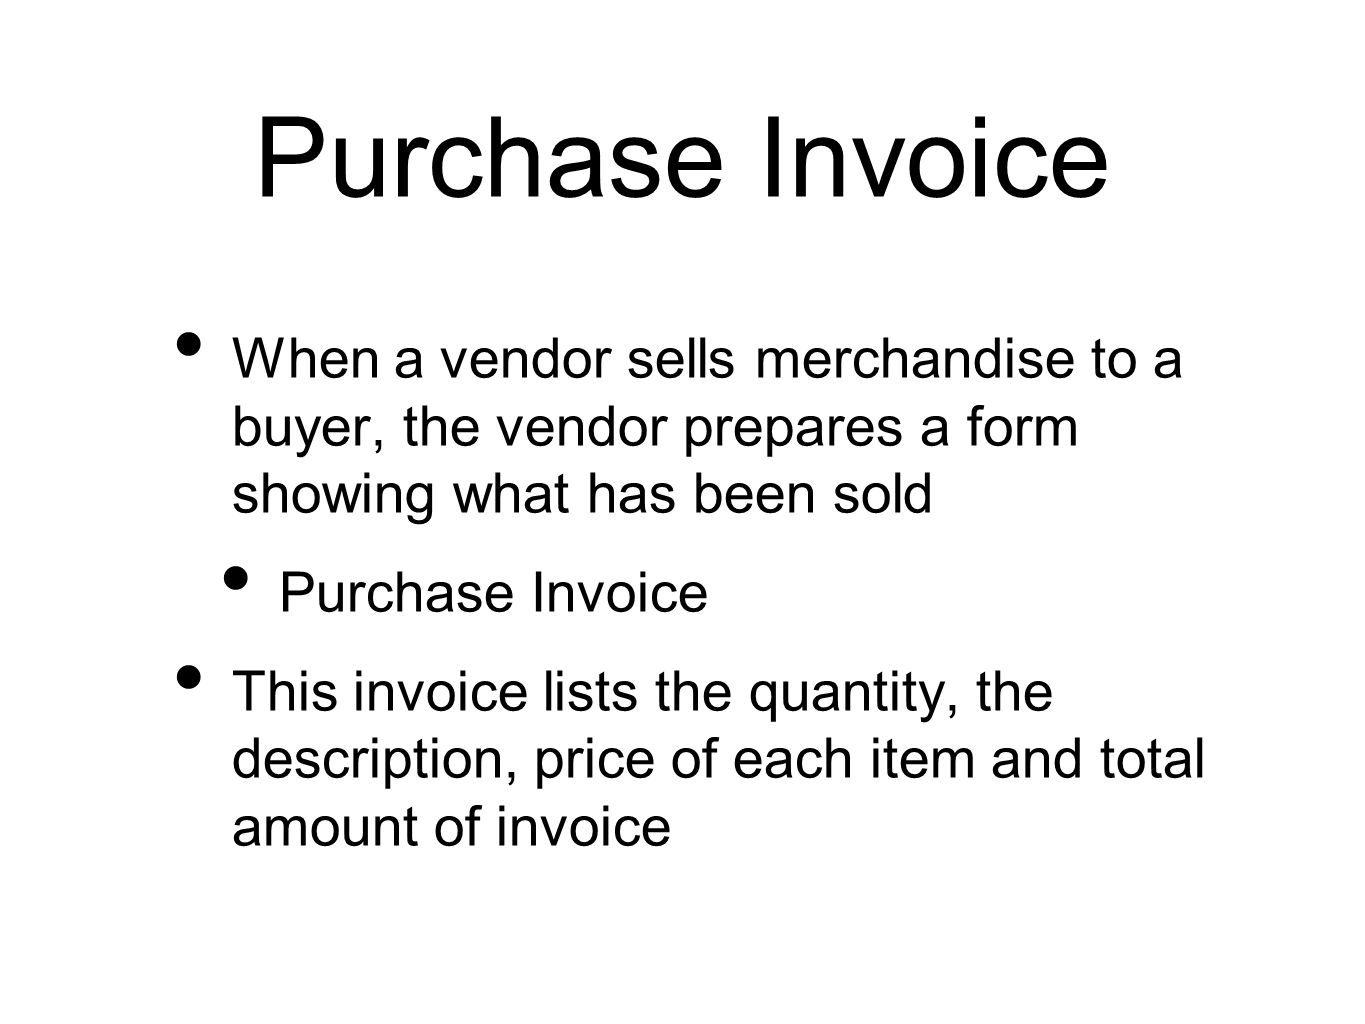 Purchase Invoice When a vendor sells merchandise to a buyer, the vendor prepares a form showing what has been sold.